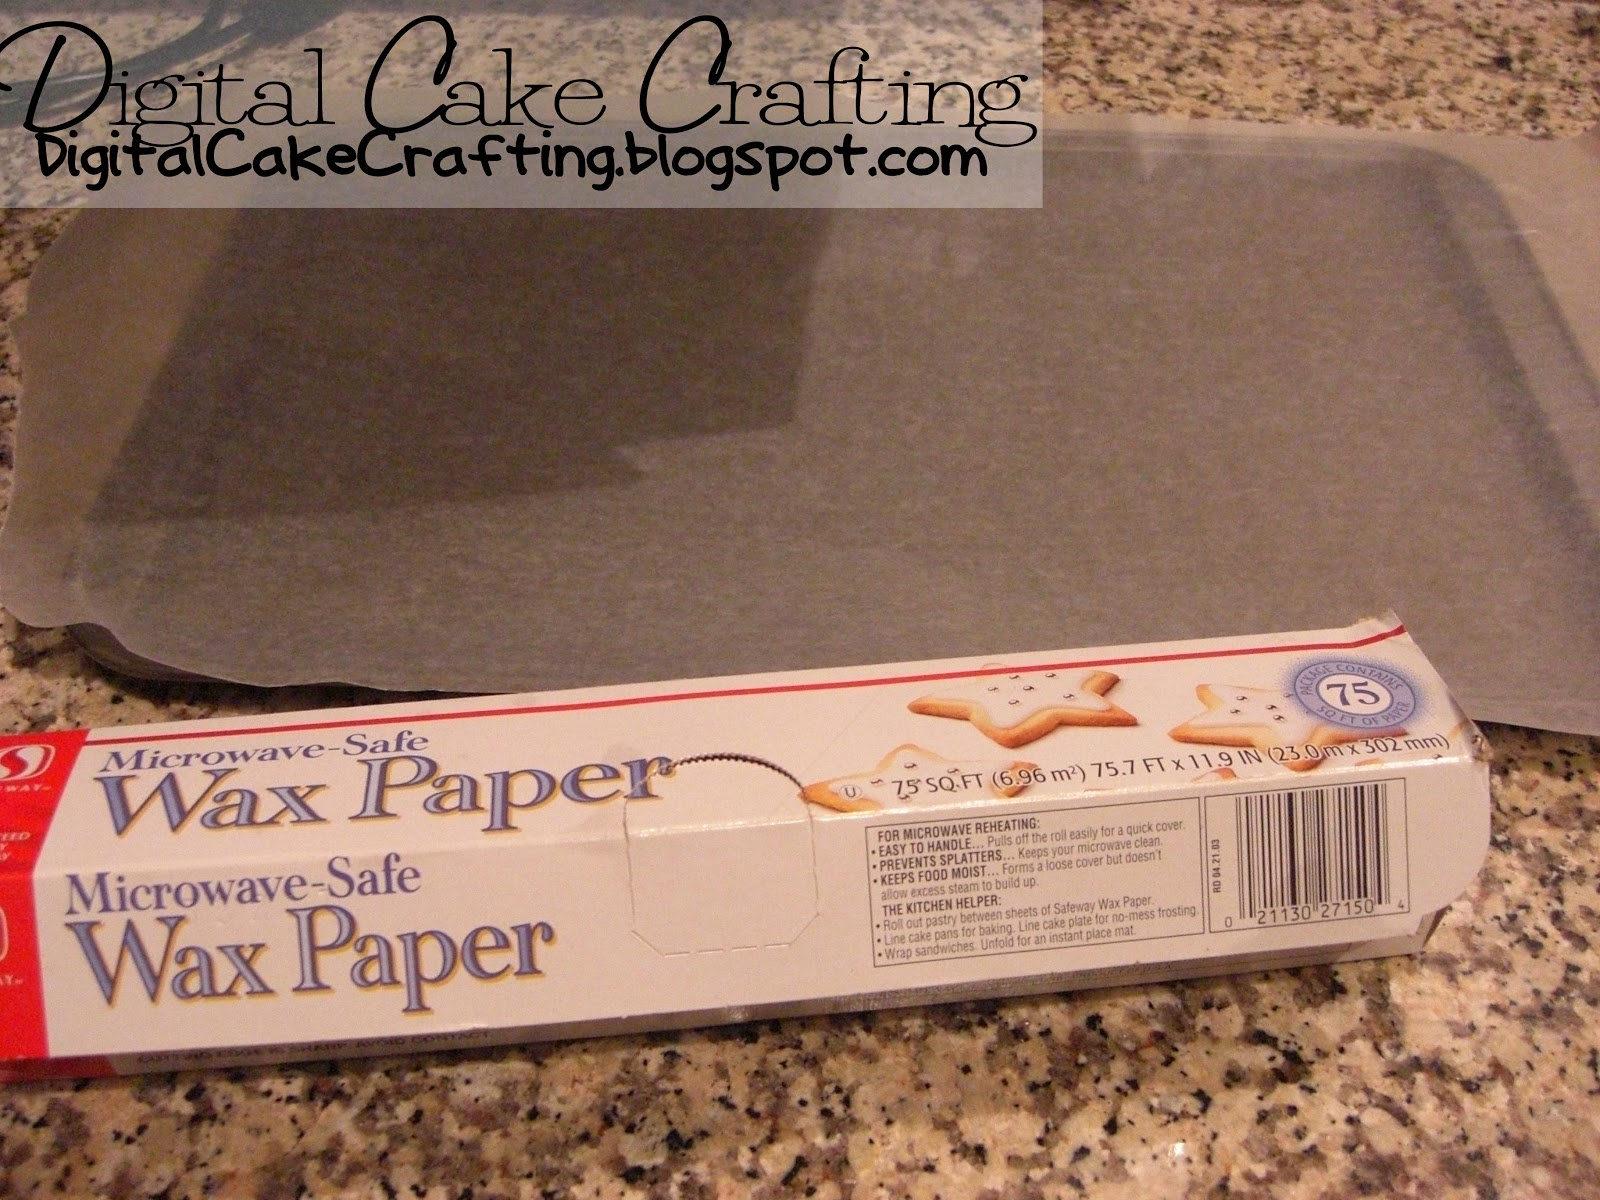 Can freezer paper be used in the oven